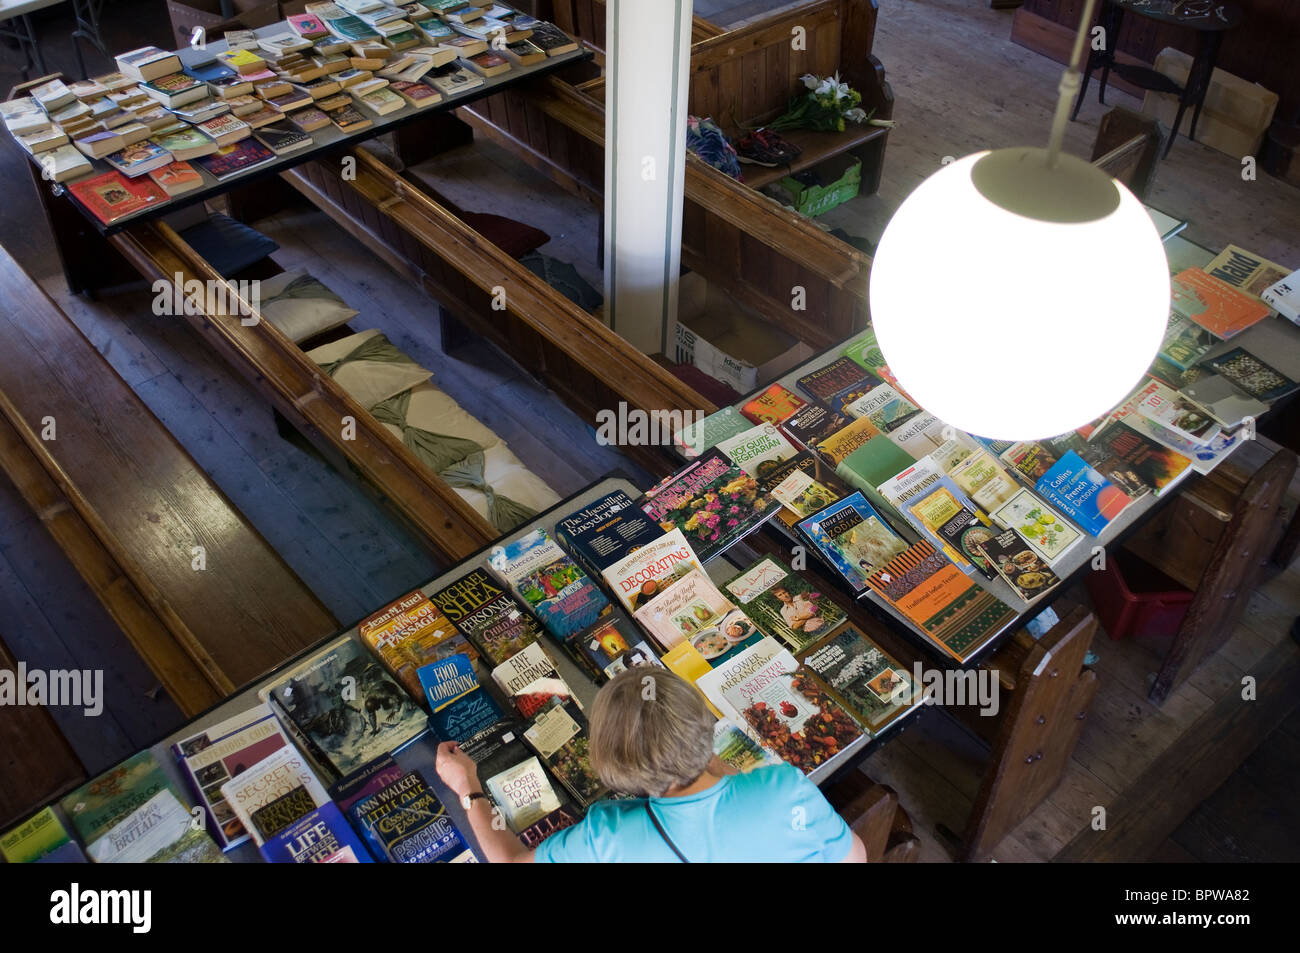 Jumble of second hand books for sale on chapel pews England,Chapel pews from above - Stock Image